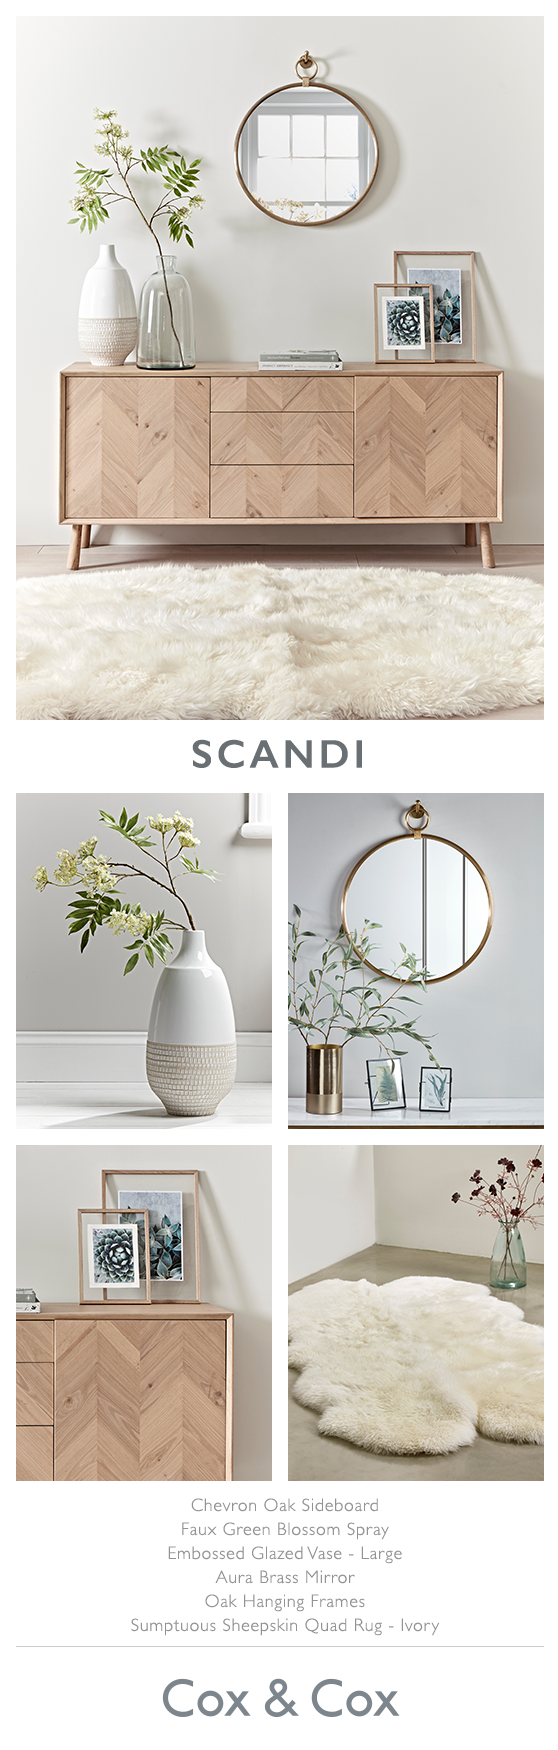 Scandi Deco Inspiration Pinterest Decoracion Oficina  # Muebles Oficina Cox